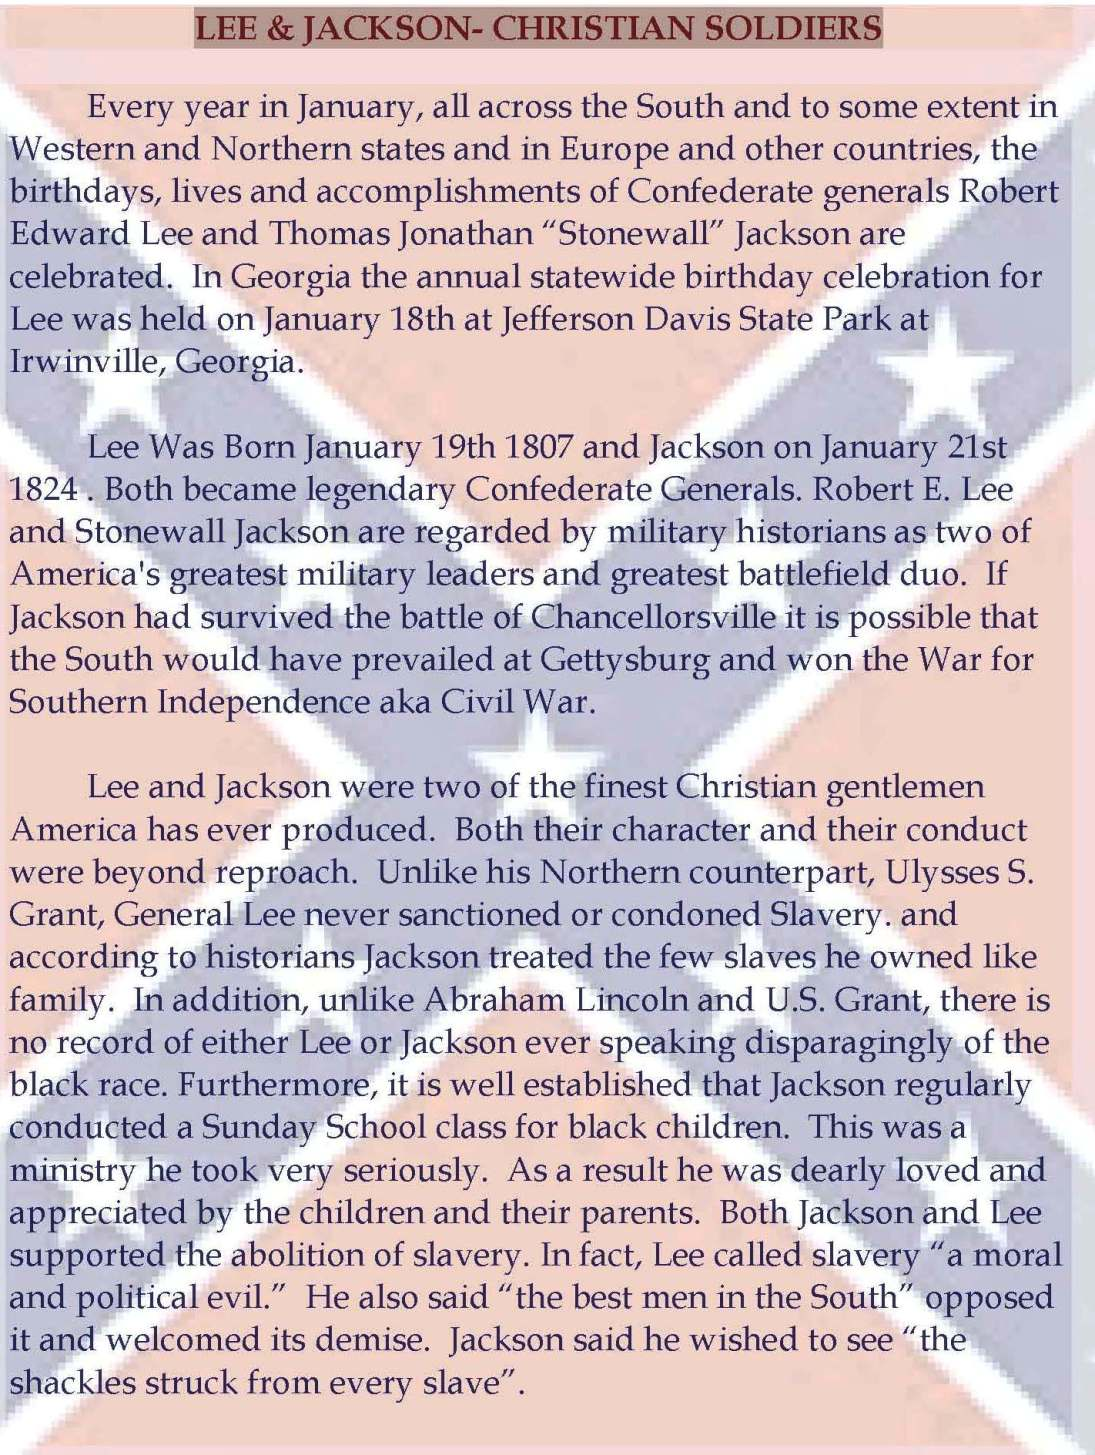 LEE & JACKSON- CHRISTIAN SOLDIERS_Page_1